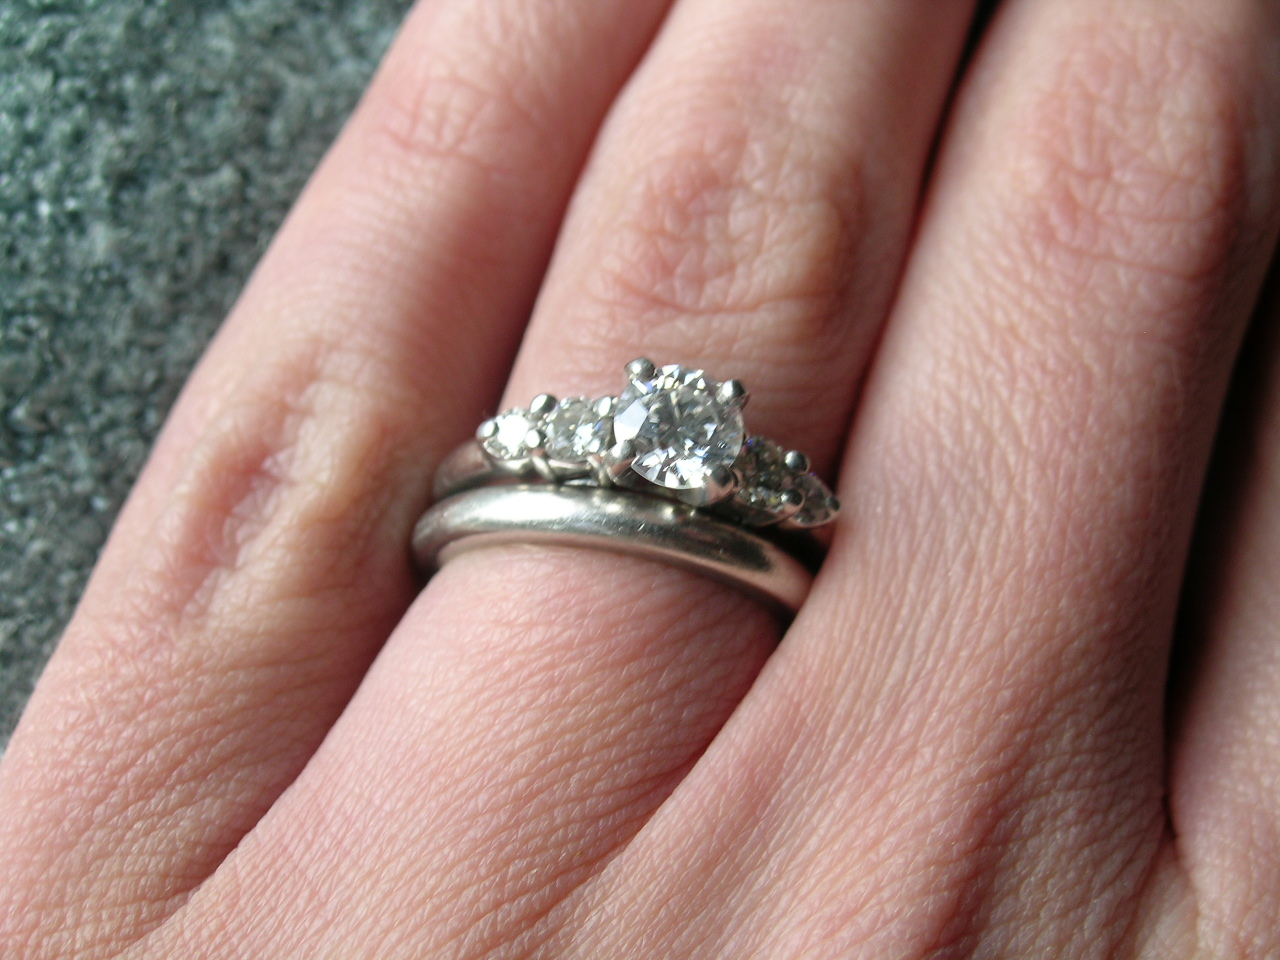 Woman S Hand Showing Both Wedding And Engagement Rings | in italy ...